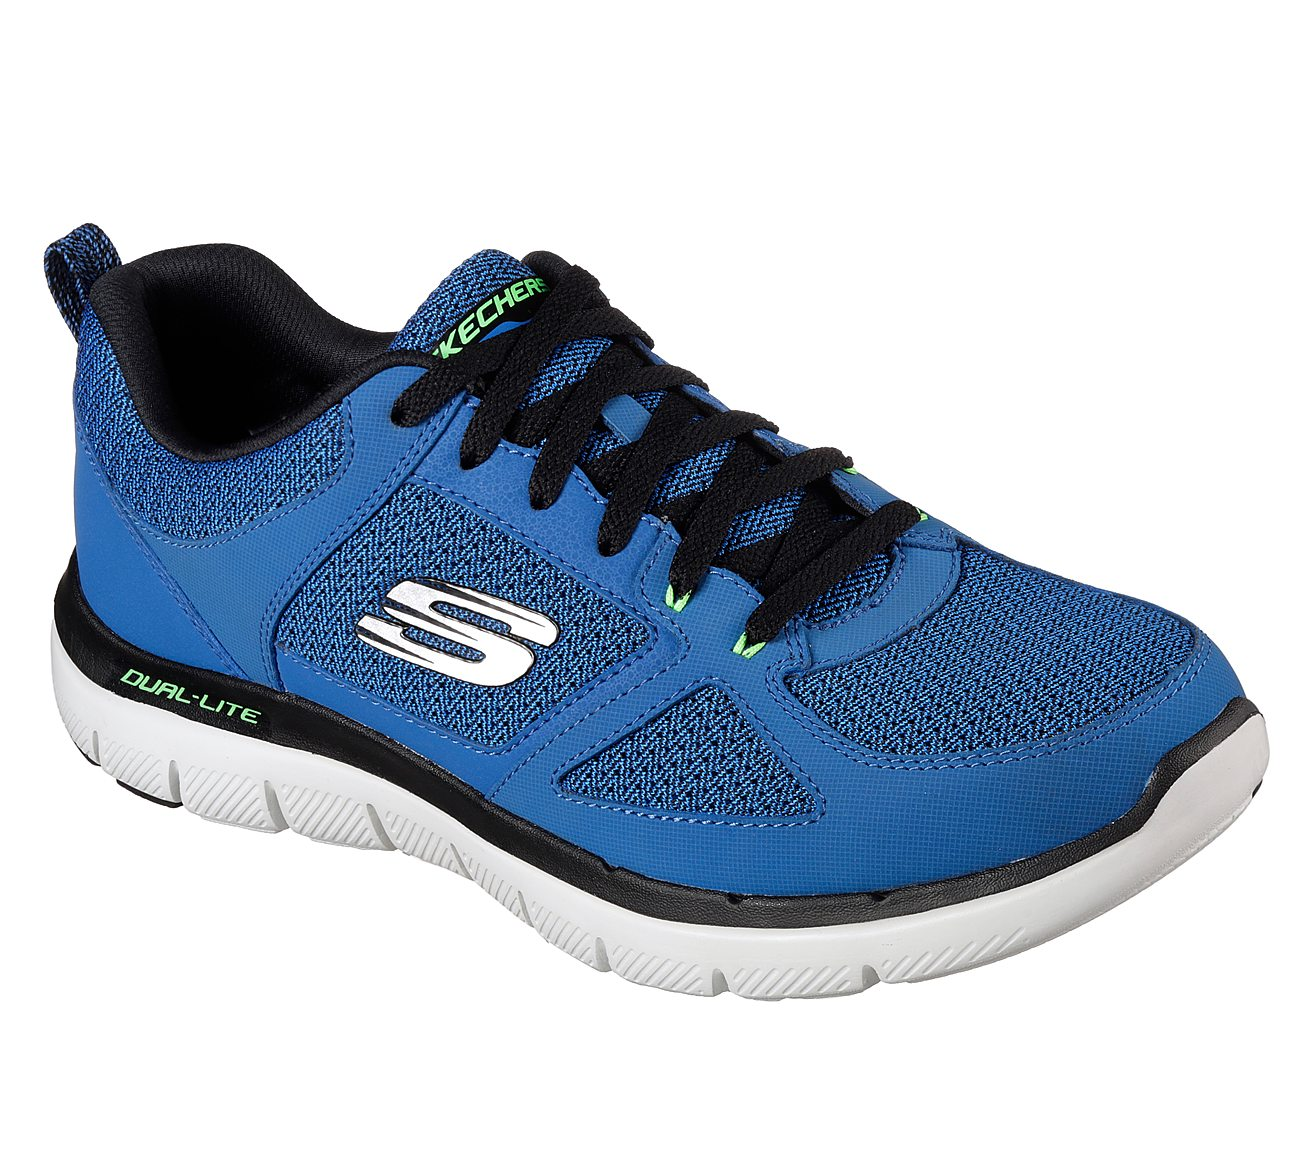 03bcf18f98 Buy SKECHERS Flex Advantage 2.0 Sport Shoes only  65.00